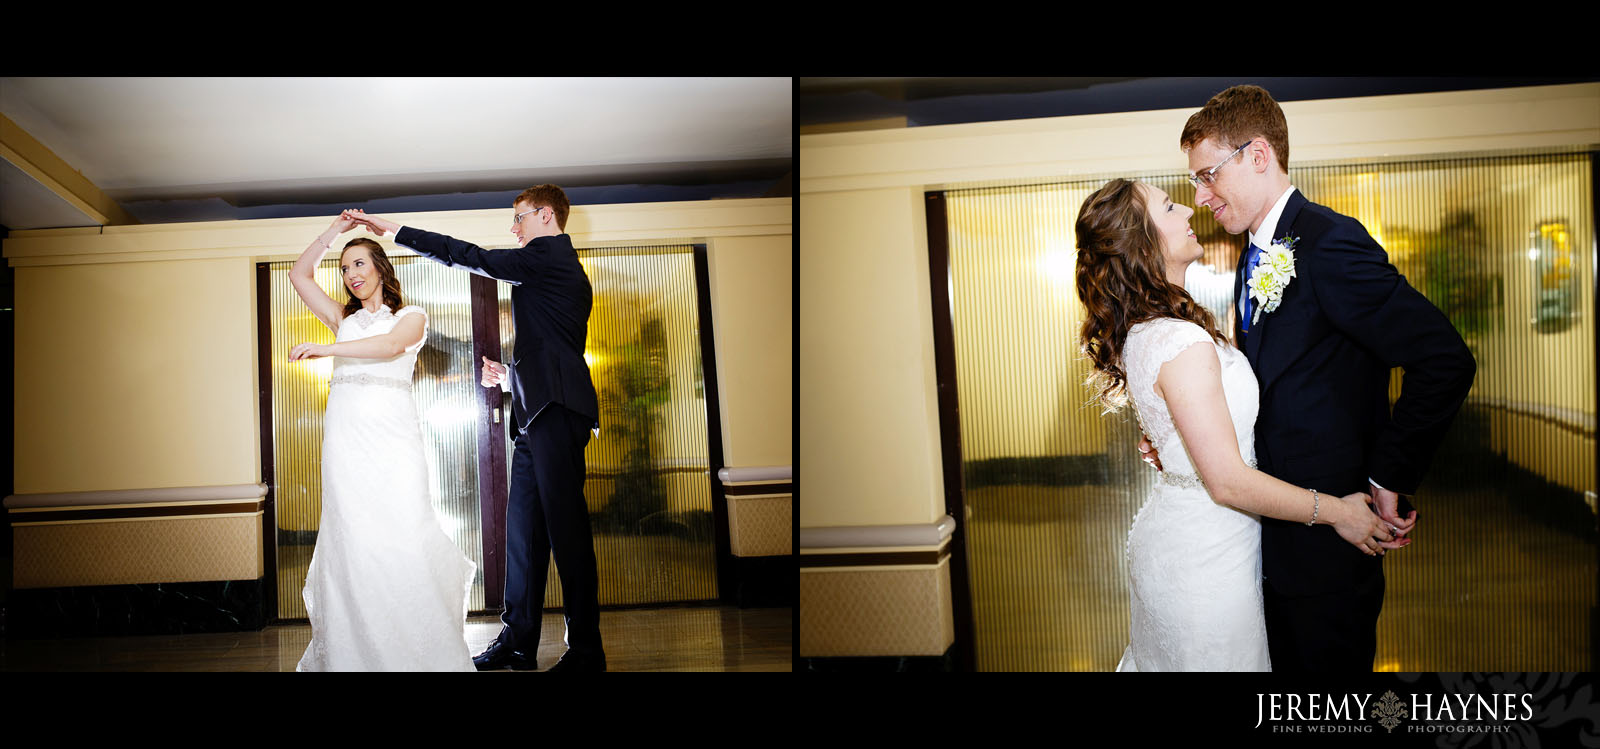 jeremy-haynes-photography-pipers-at-the-marott-indianapolis-wedding-pictures.jpg